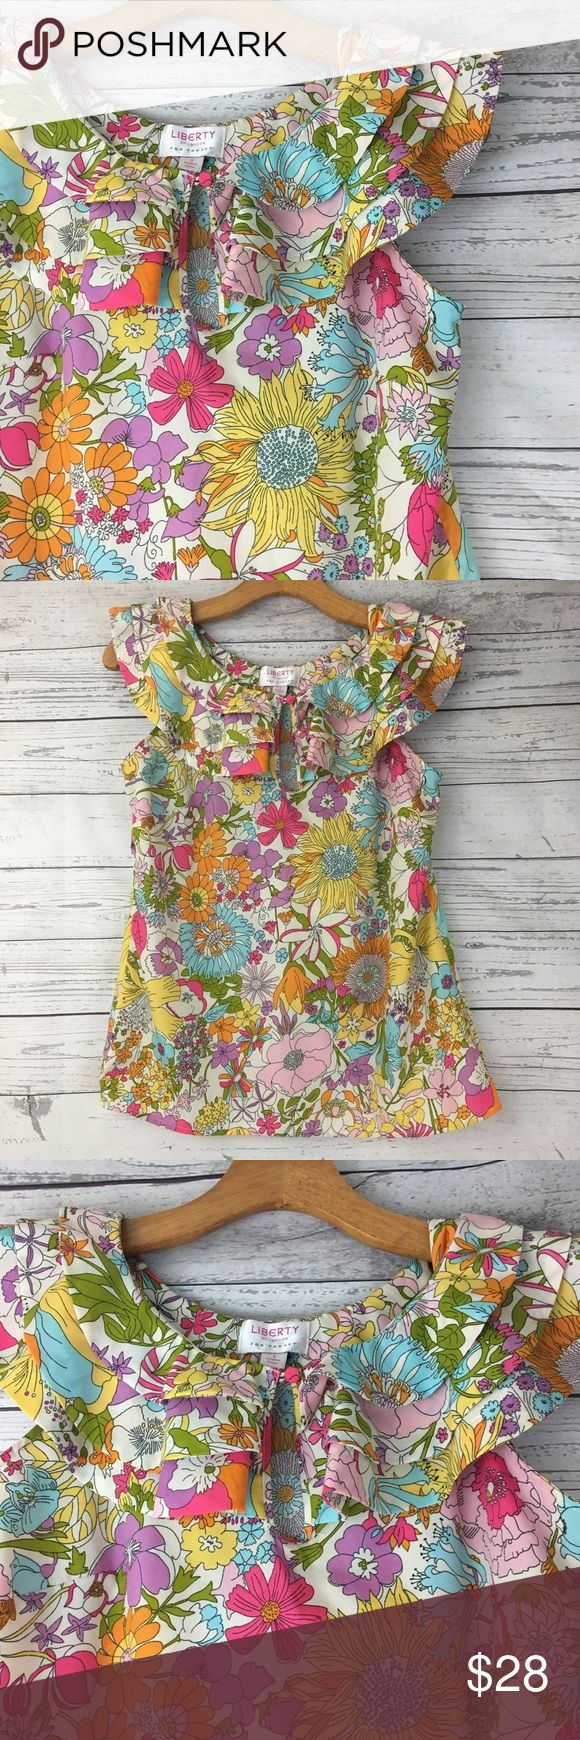 """Liberty for London Target floral ruffle blouse Liberty for London for Target floral blouse with a ruffle already my the neckline. This top is sleeveless and has a button keyhole on the front. This bright top is perfect for spring and summertime!  Measurements pit to pit 17.5"""", length 24"""" EUC  D1 Liberty for London Tops Blouses"""